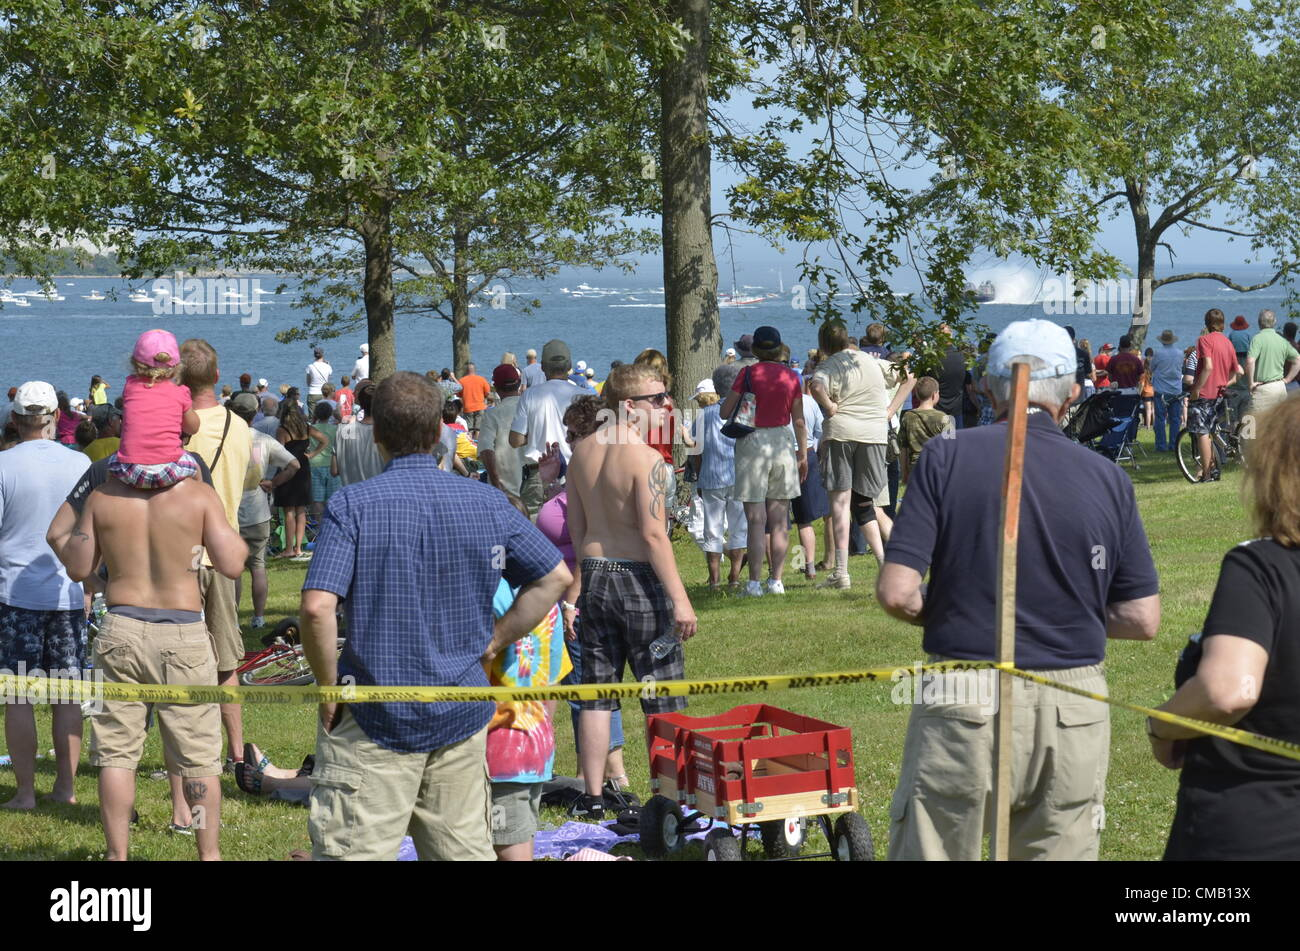 Niantic, Connecticut, July 6, 2012 - Crowds gather at McCook's Point Park for the  OpSail 2012 opening day festivities - Stock Image